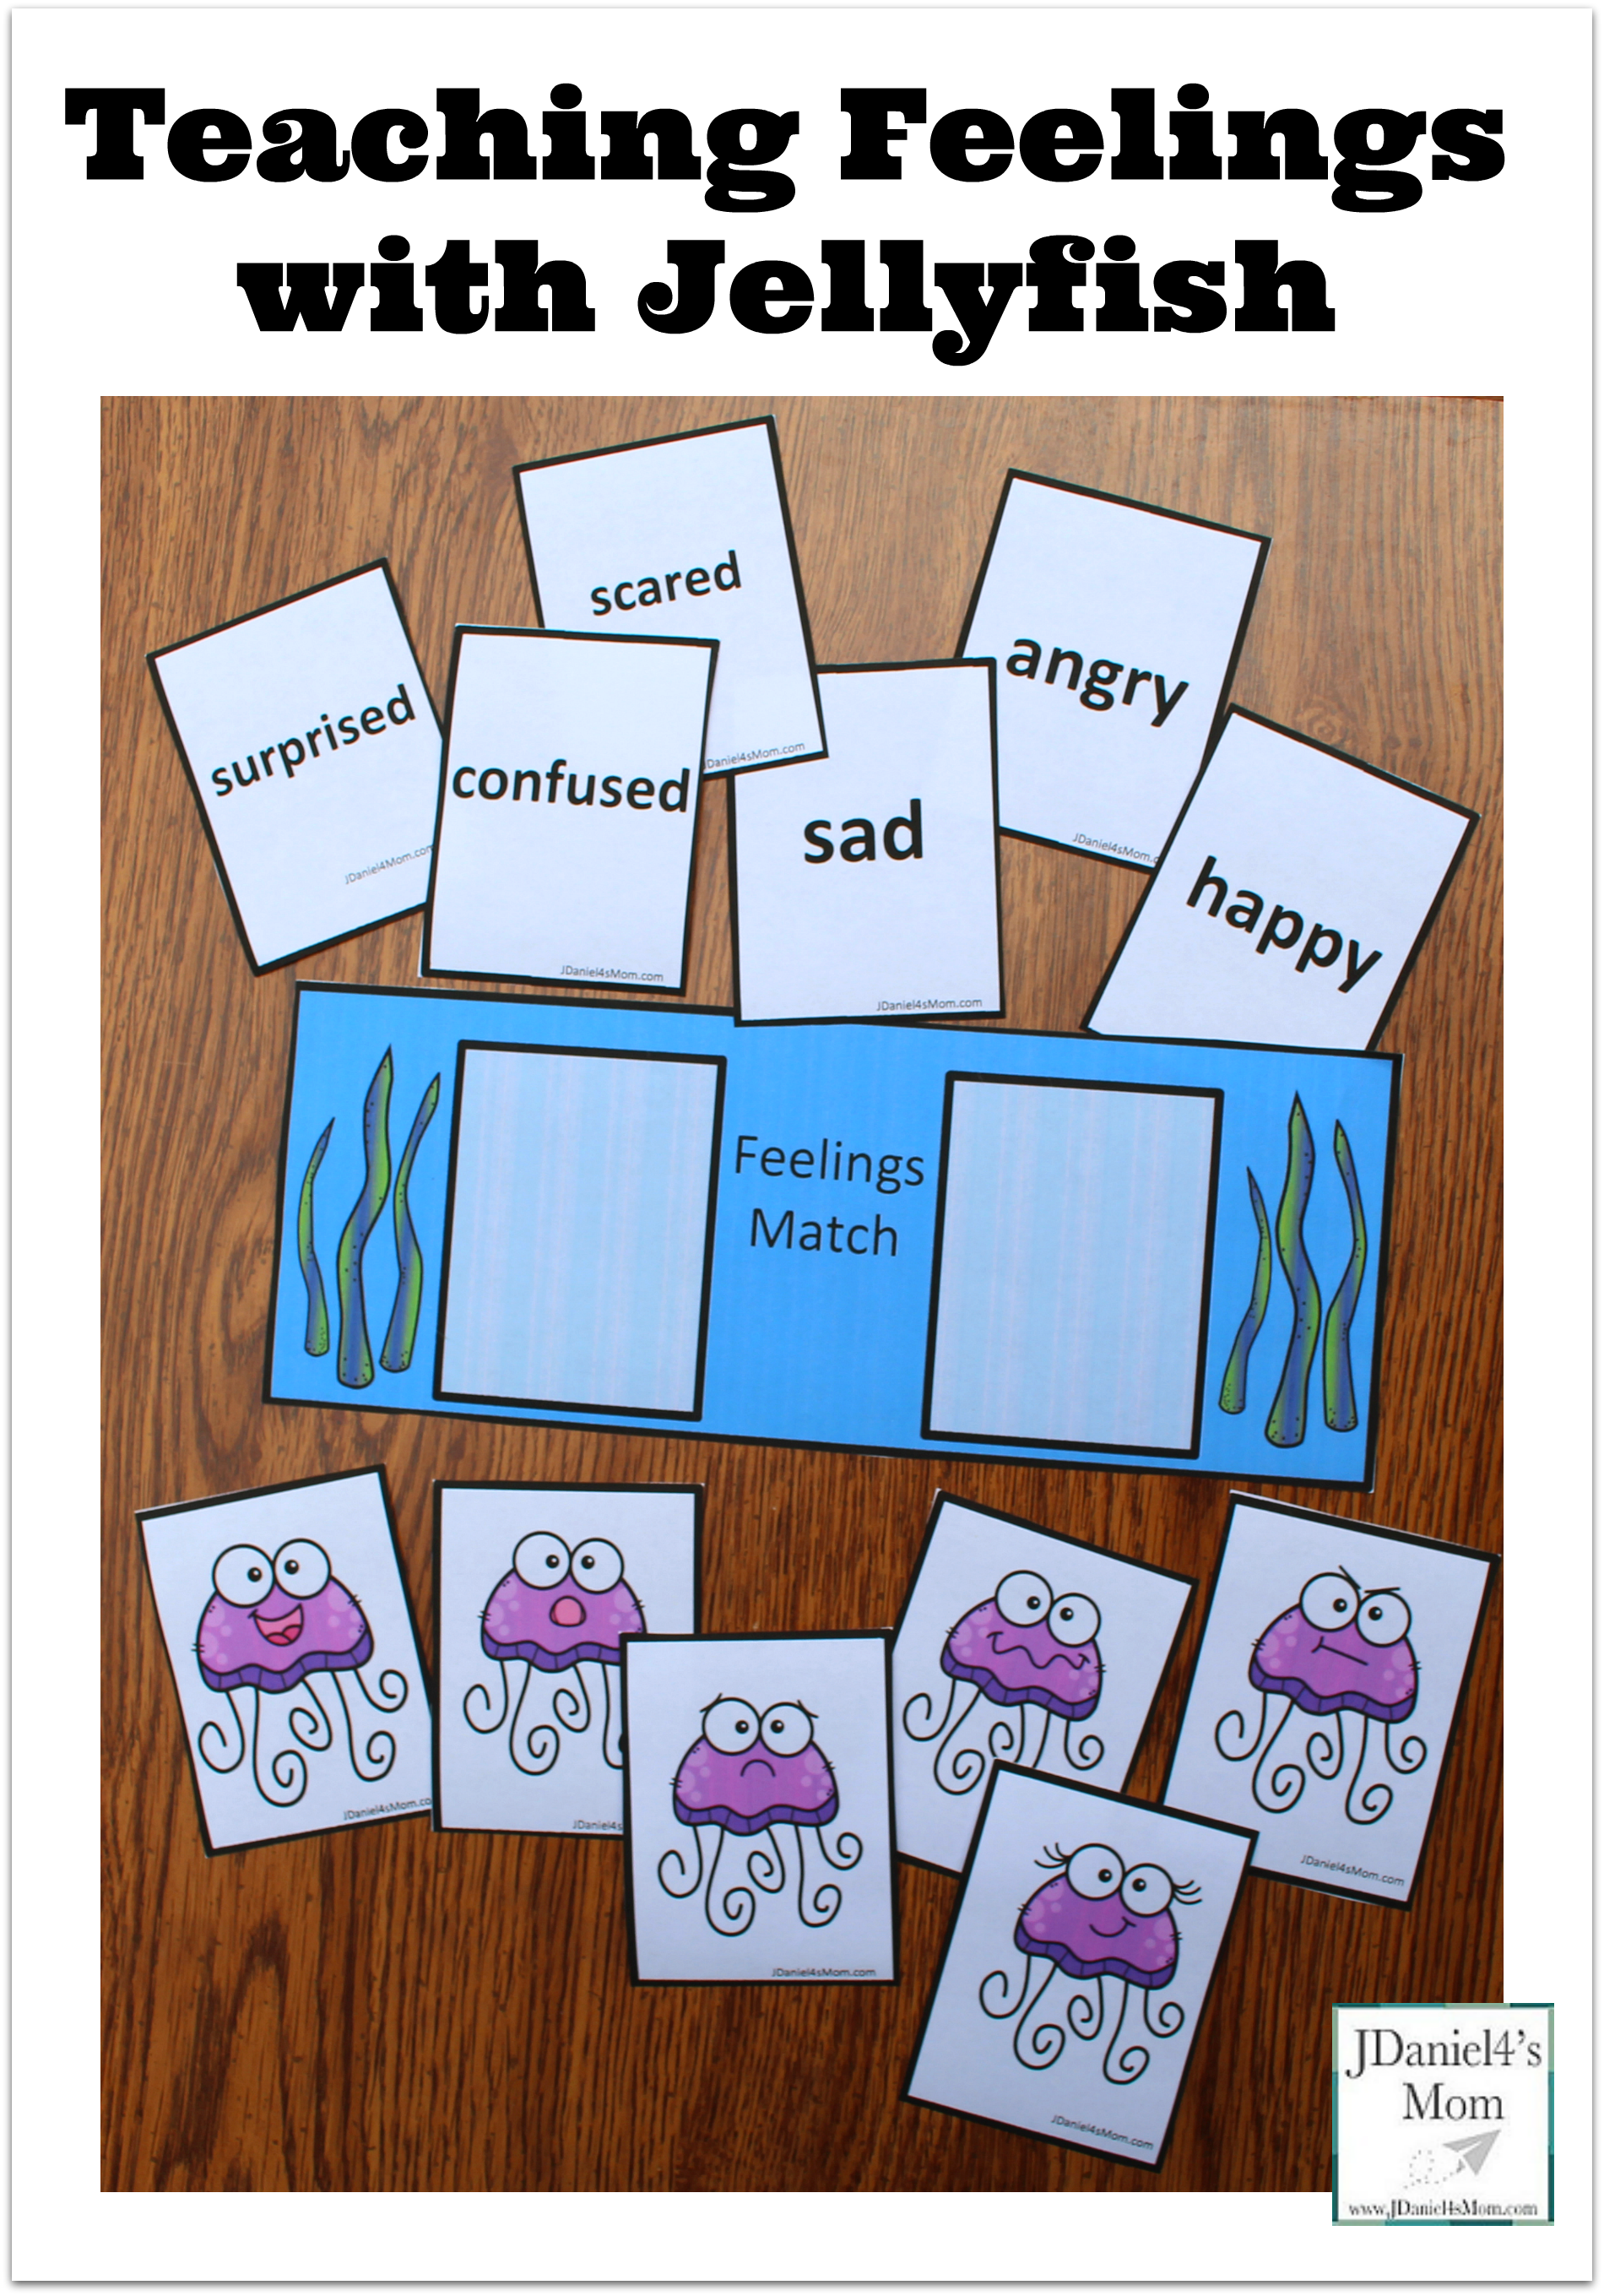 image about Feelings Cards Printable identify Education Thoughts with Jellyfish Recreation Printables